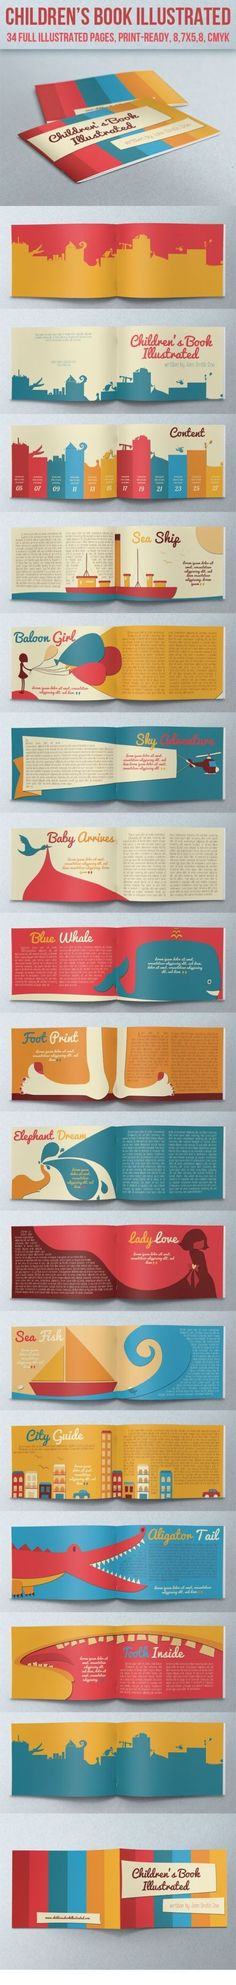 Simple illustrations for kids' book